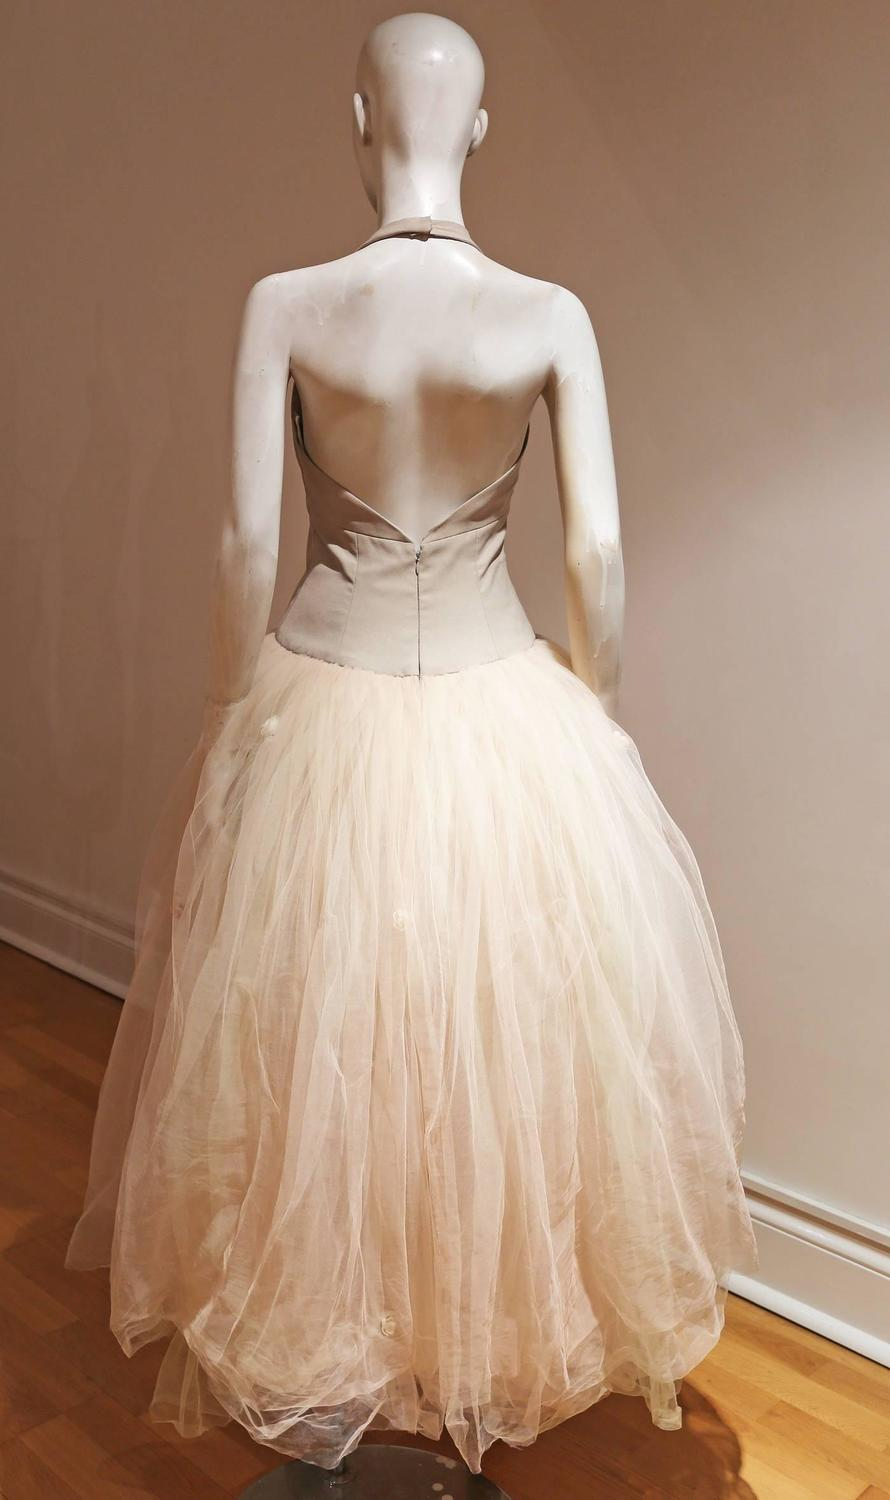 Vera Wang Tulle Halter Neck Bridal Dress For Sale At 1stdibs